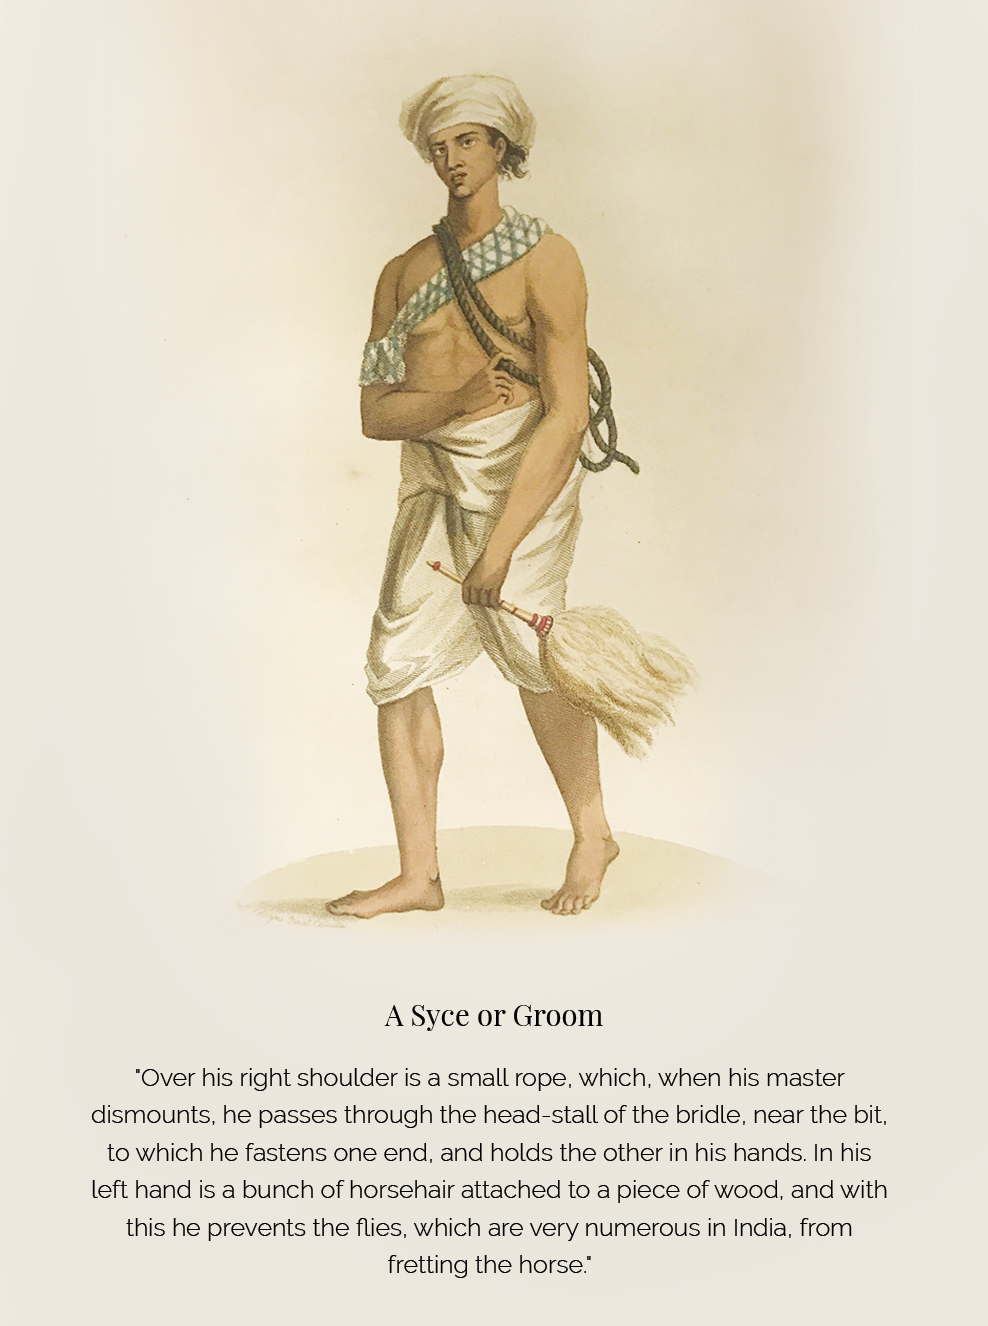 'Costume of Hindostan' – A Rare Glimpse of the Common Indian from 18th-Century Bengal - Costumes, Dancers & Costumes, Edward Orme, Engravings, rare books